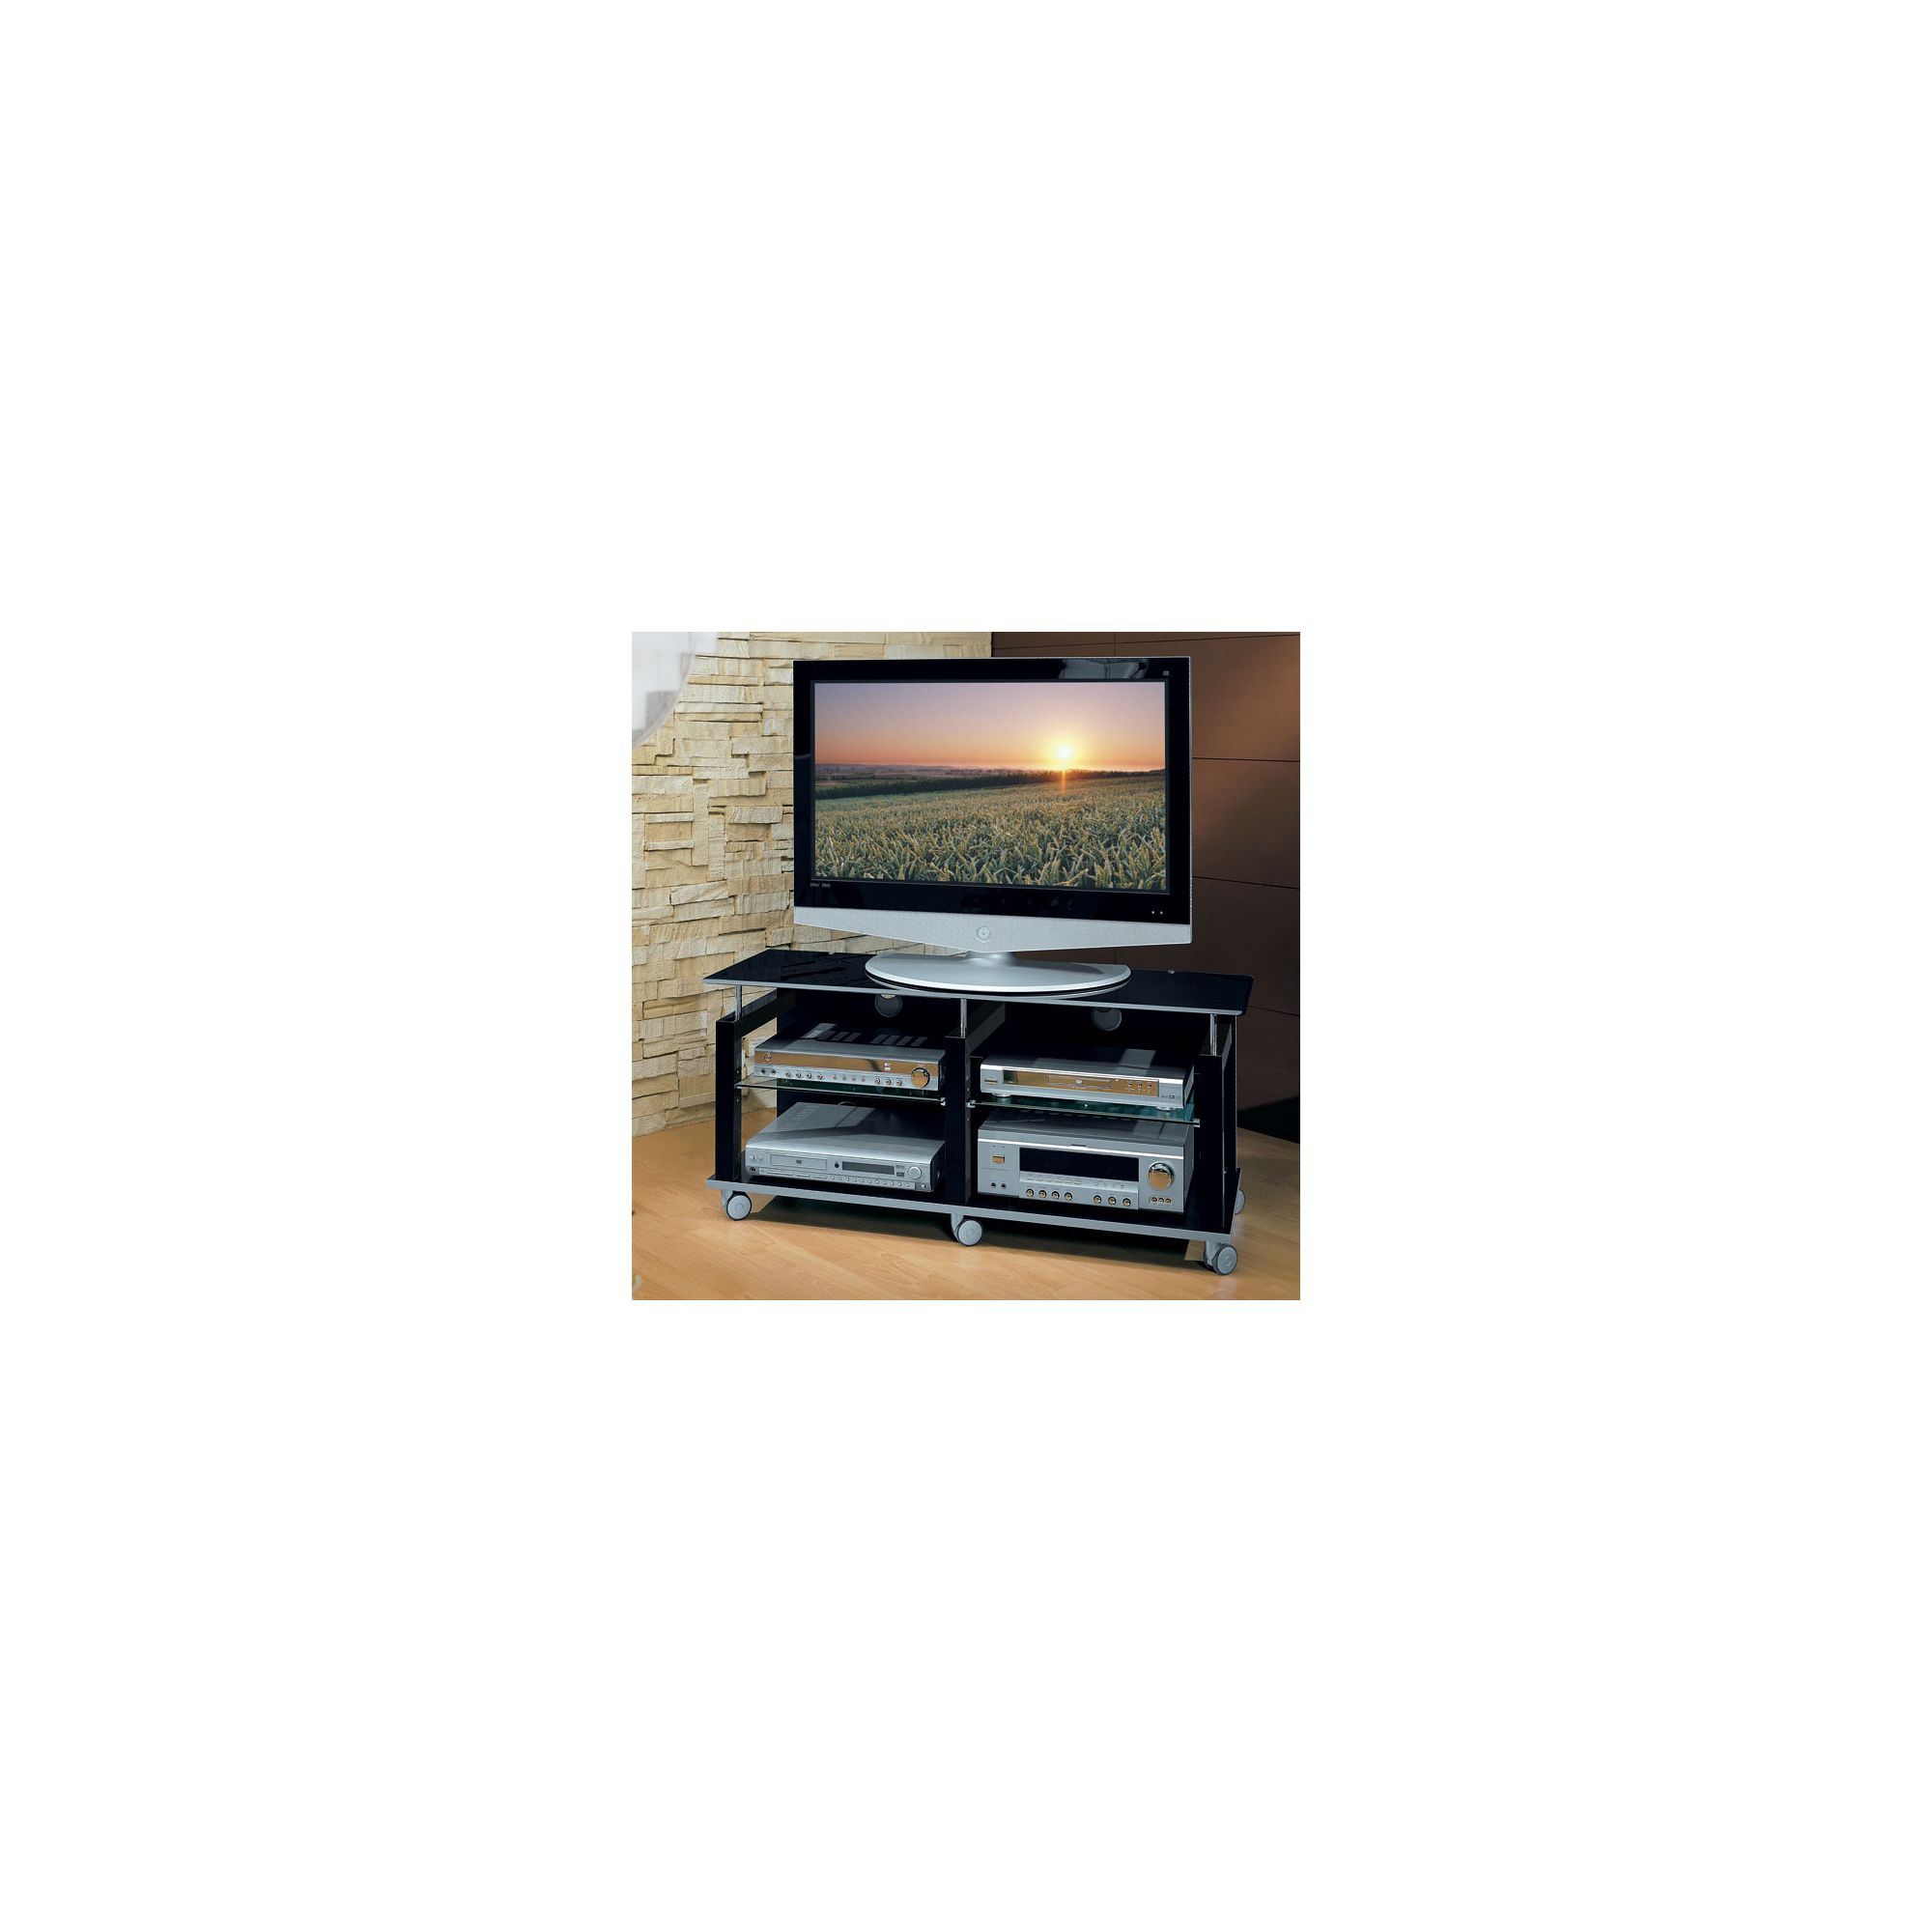 Triskom Wooden TV Stand for LCD / Plasmas - Black at Tesco Direct